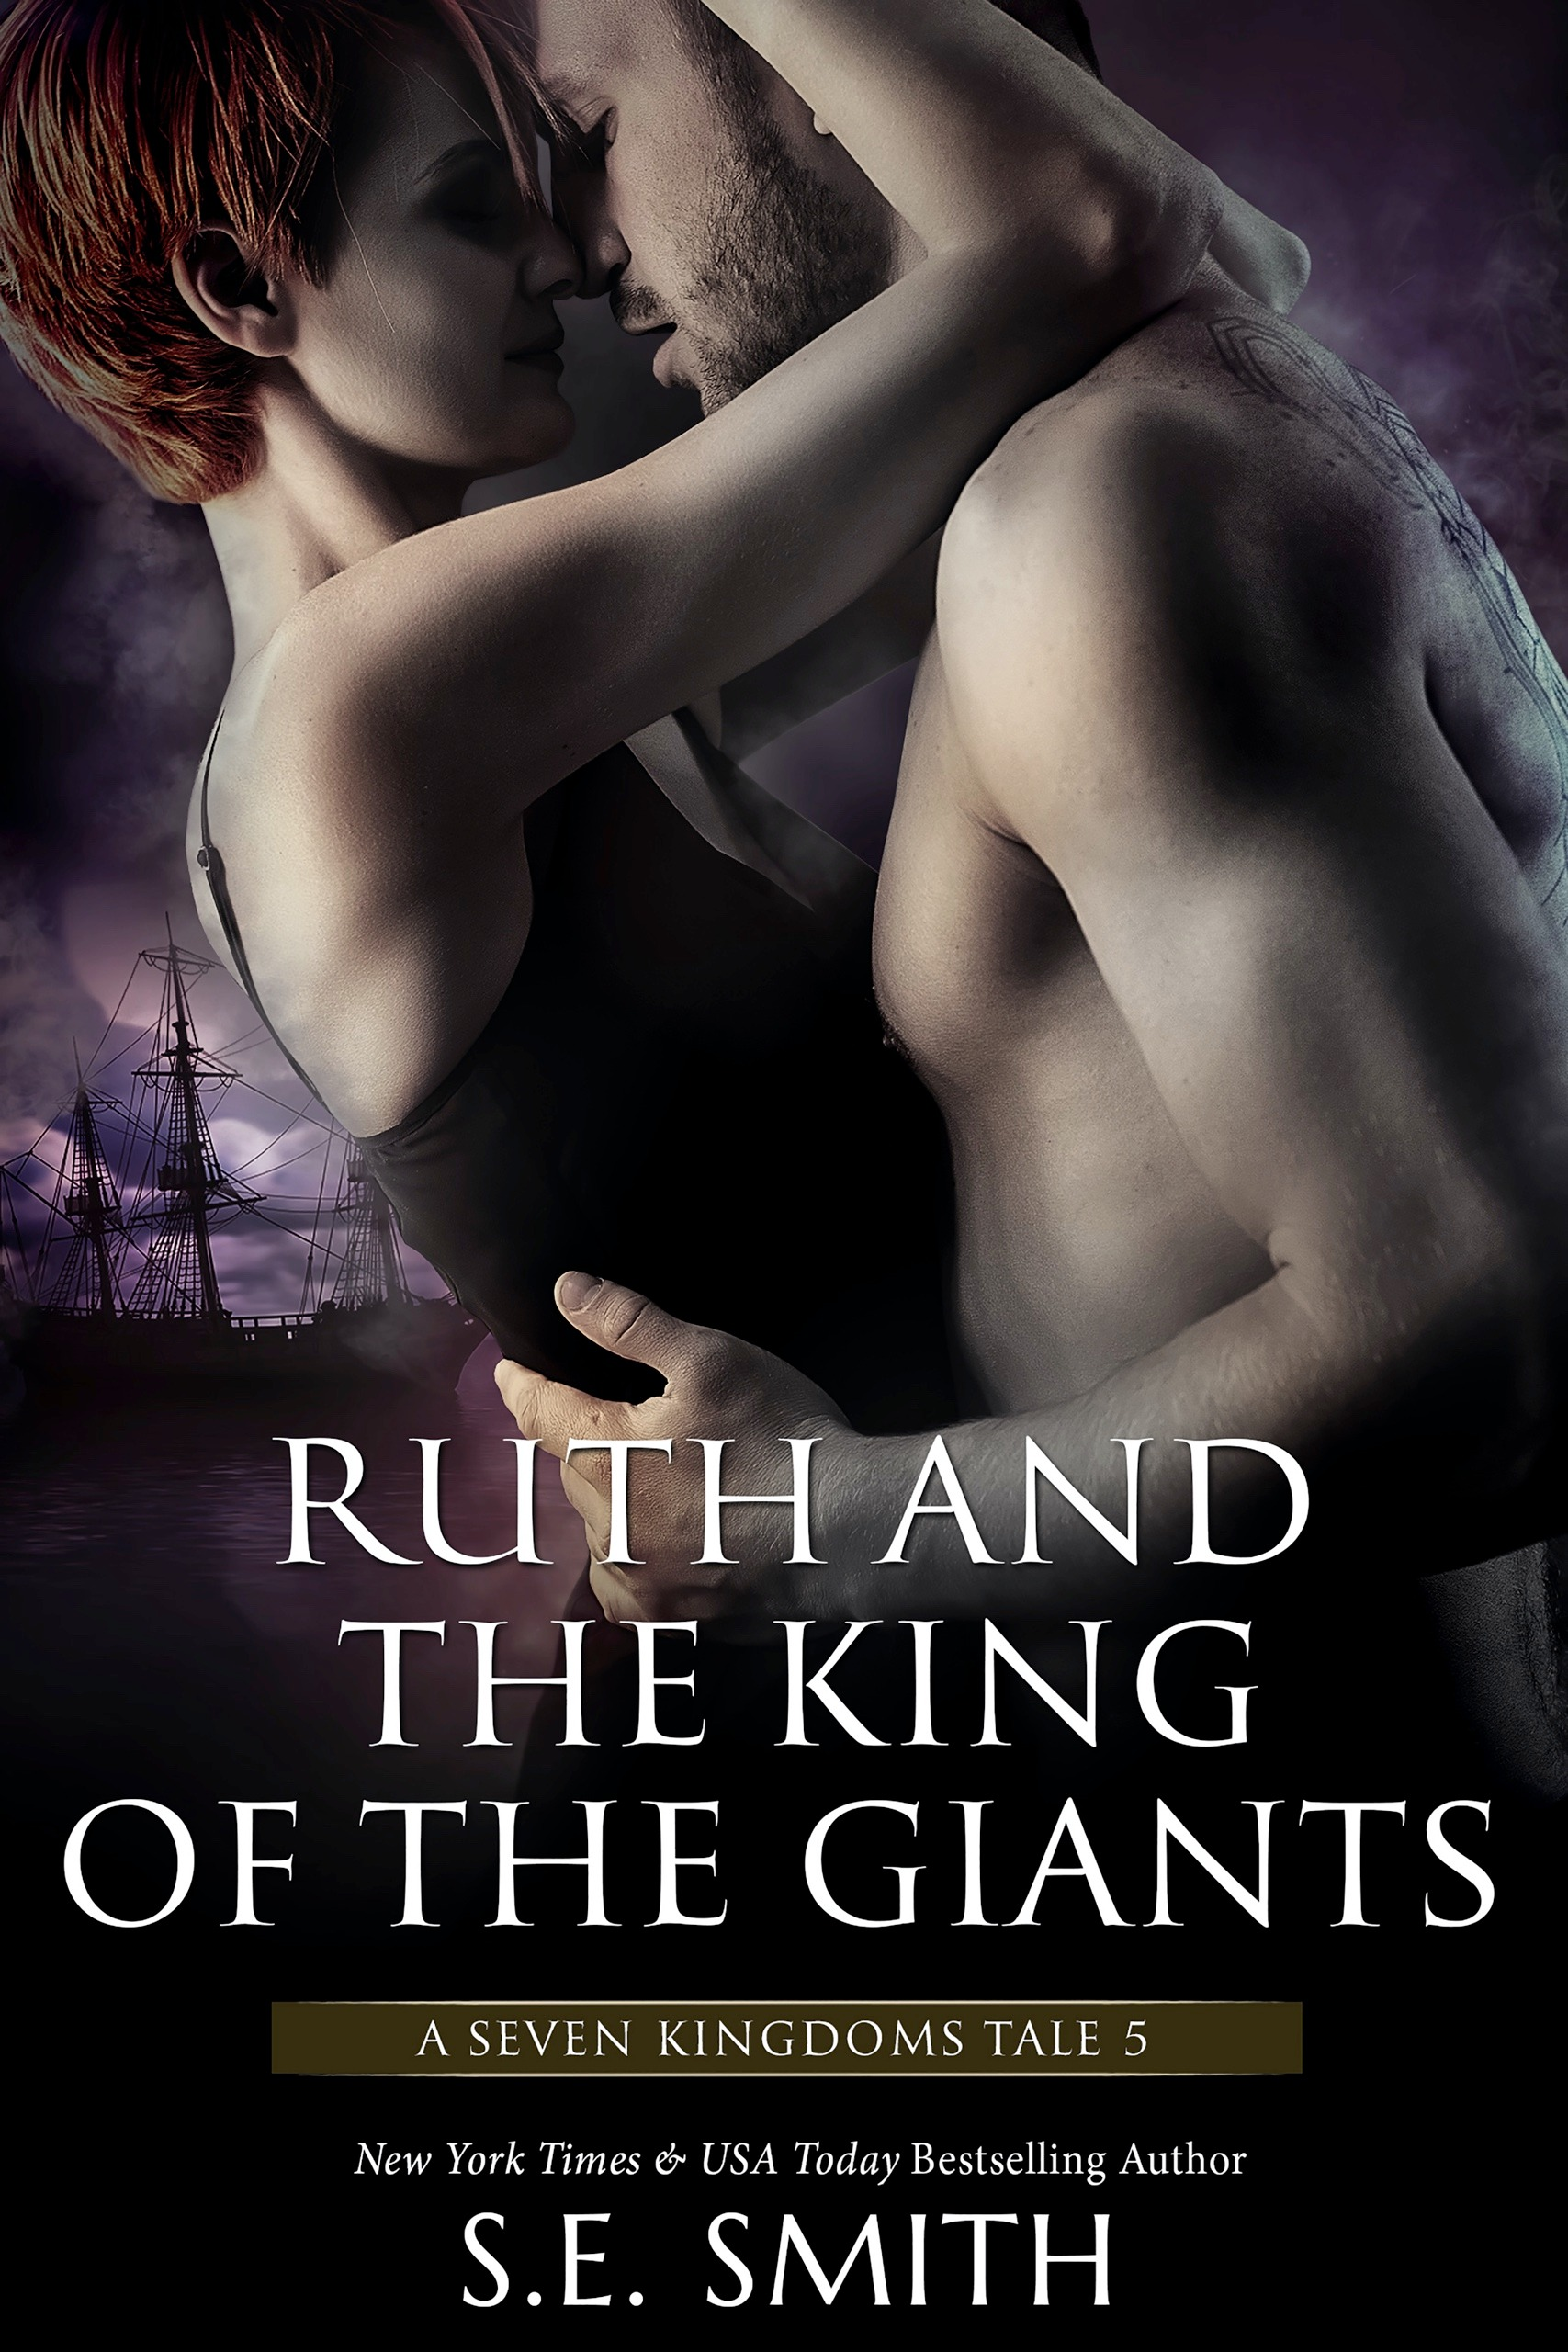 Ruth and the King of the Giants: A Seven Kingdoms Tale 5 (ebook: Kindle and epub)